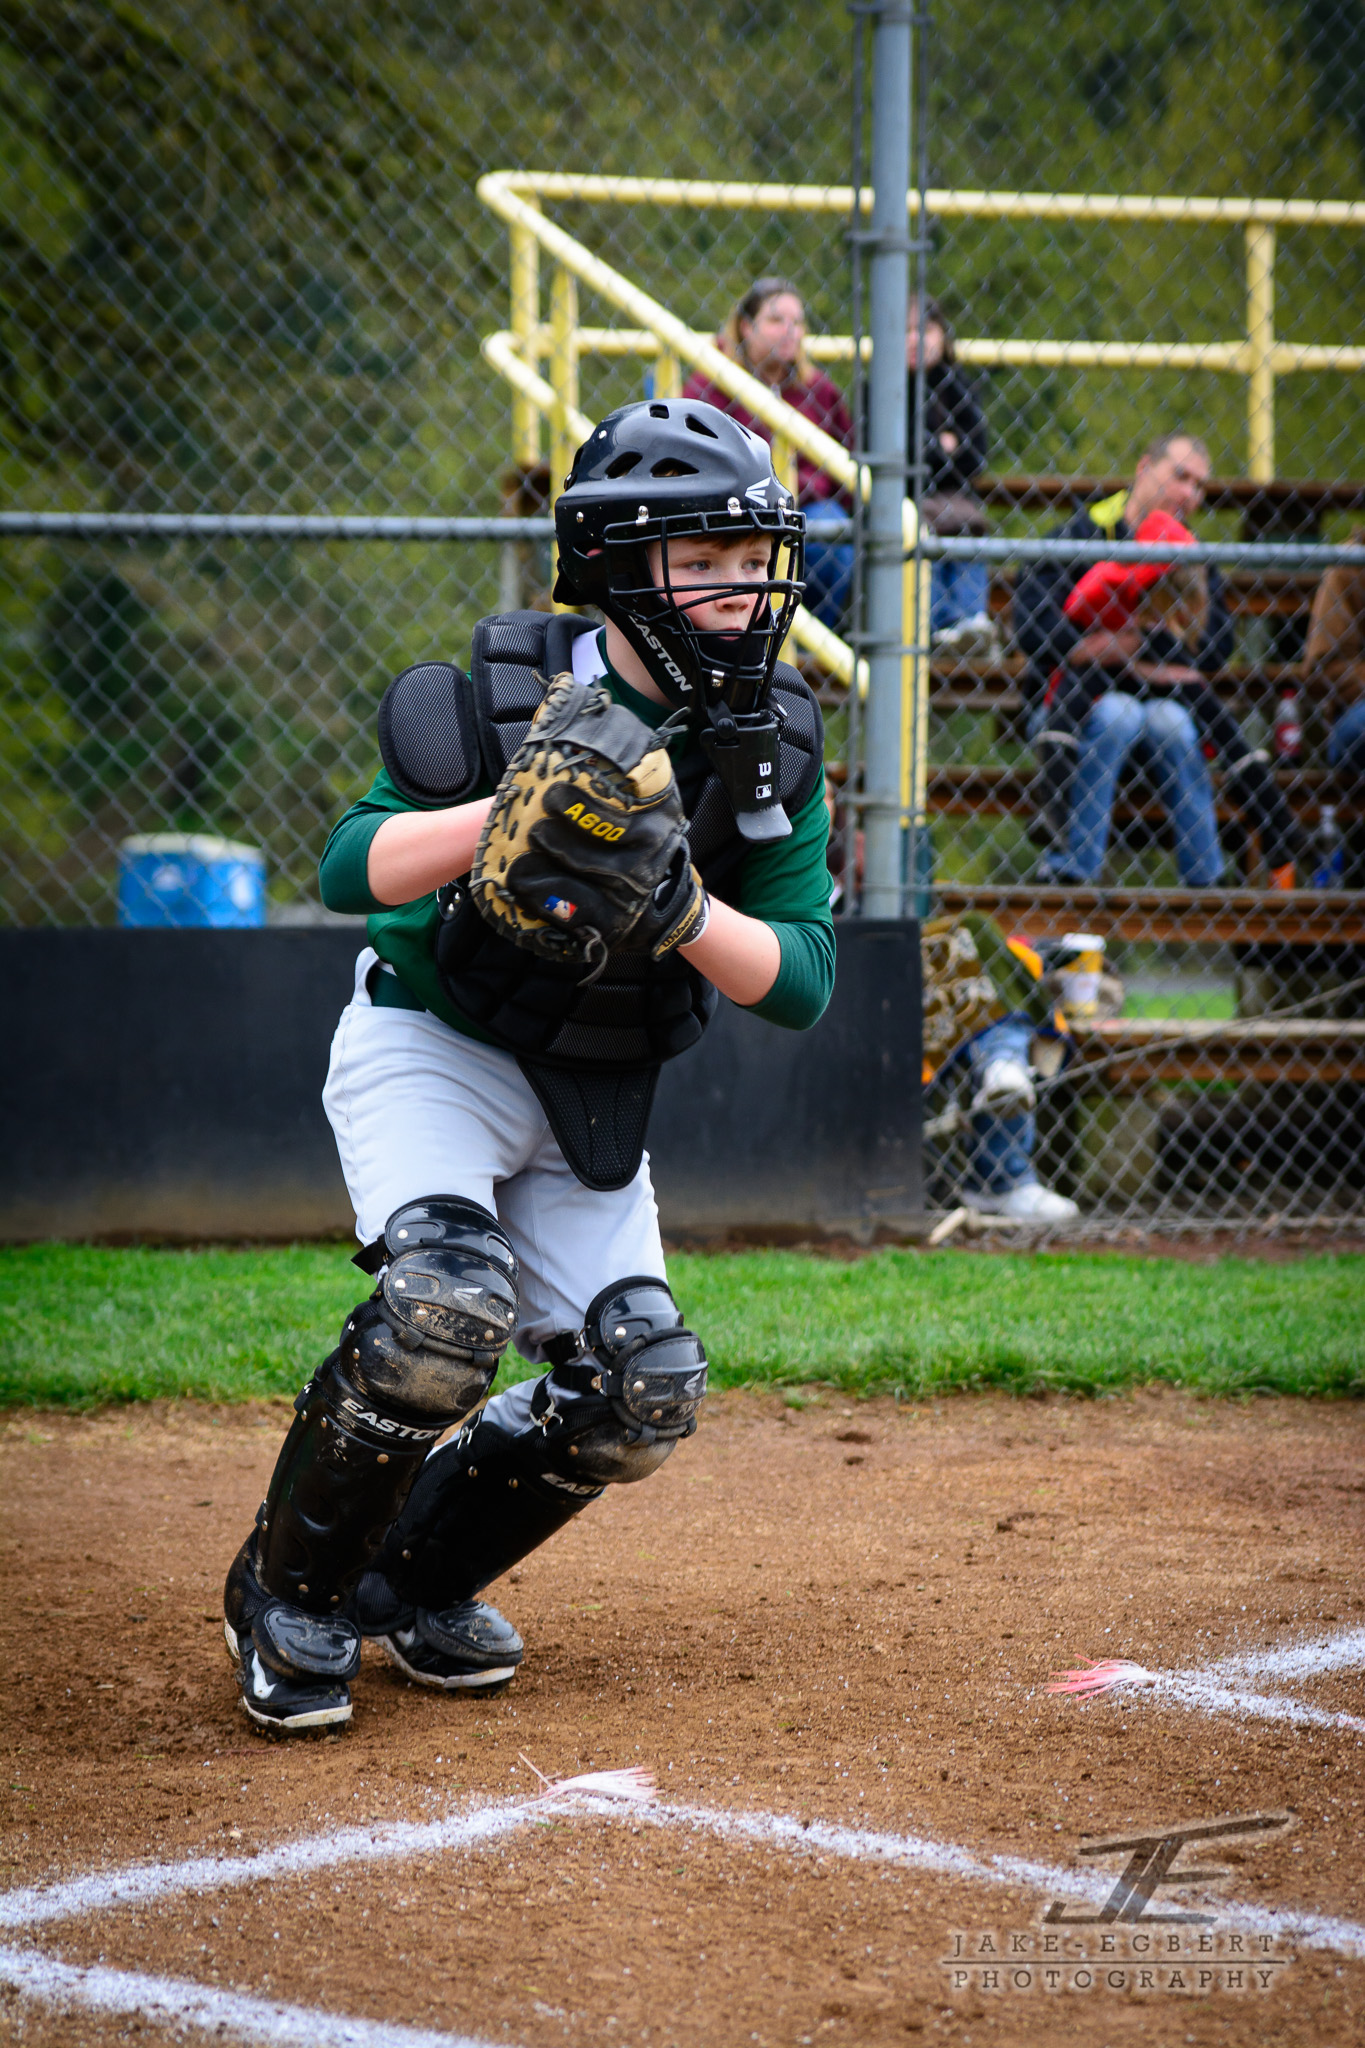 FB - 2014-04-05 - GreenSox - 19346.jpg